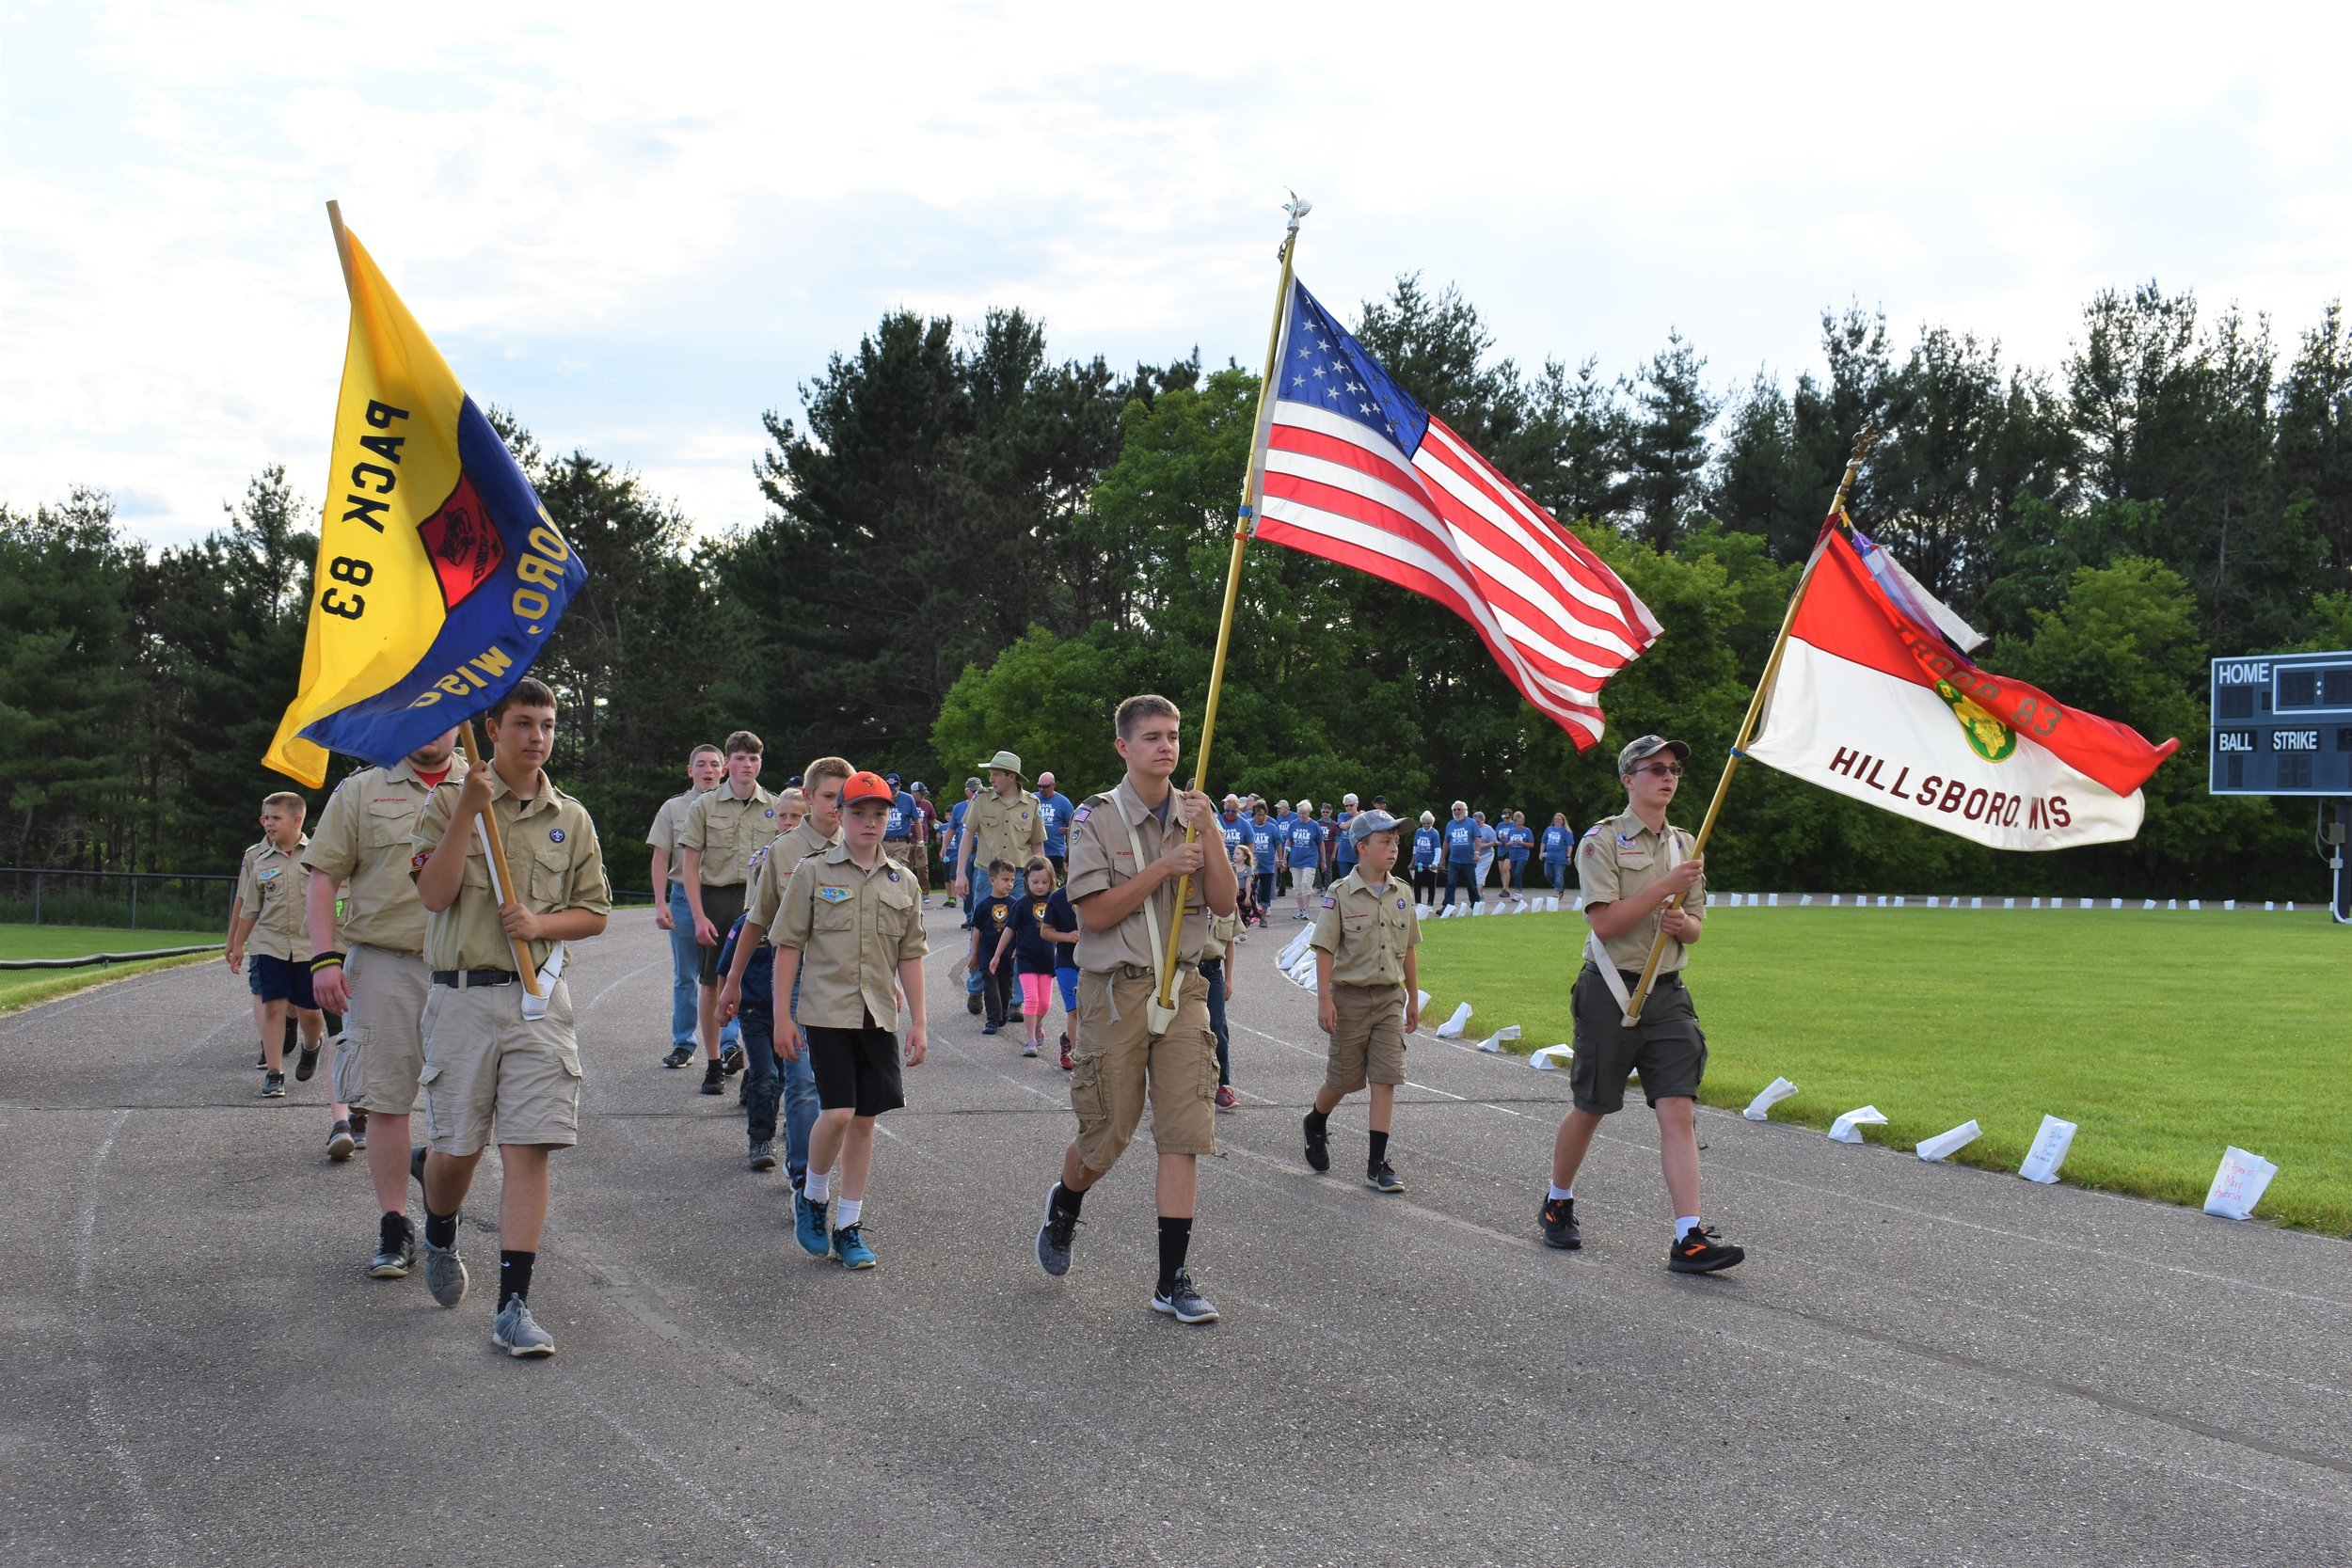 Front l to r- Nathan carrying the Pack 83 flag, Niles carrying the United States flag, and Ethan carrying the Troop 83 flag, lead survivors in opening lap